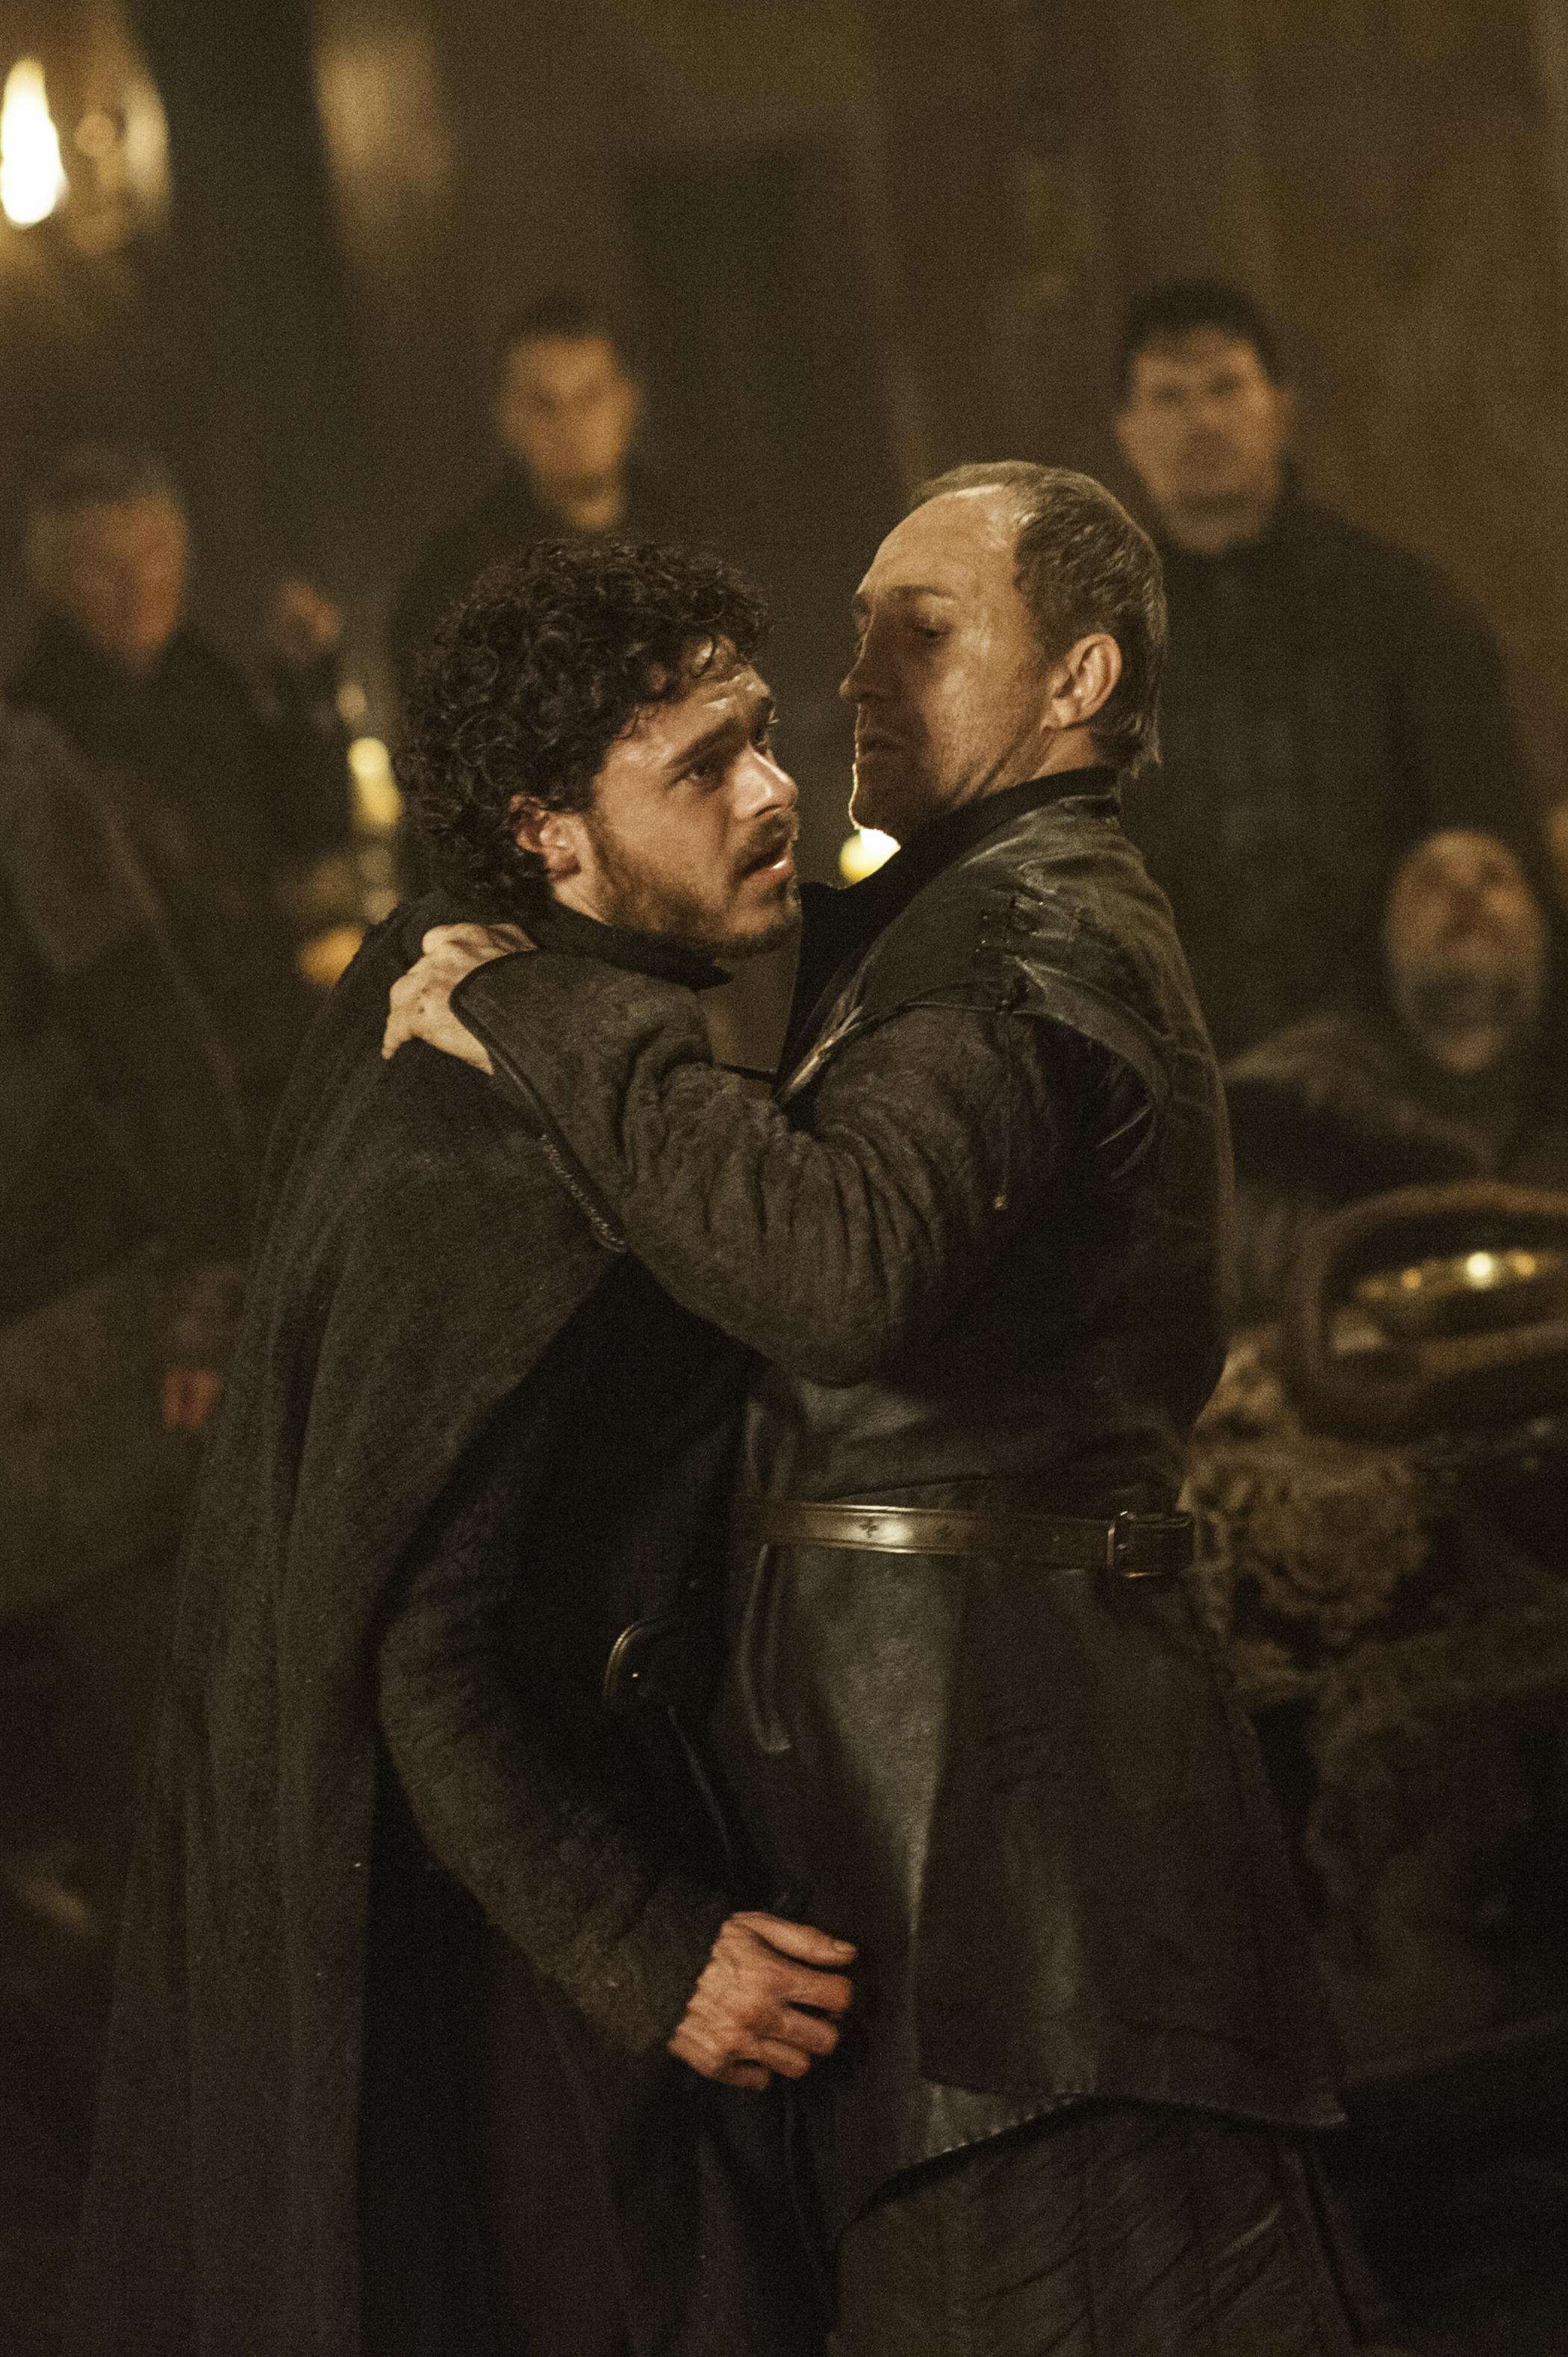 Which Episode Is The Red Wedding.Game Of Thrones Season 3 Scenes From The Red Wedding Access Online